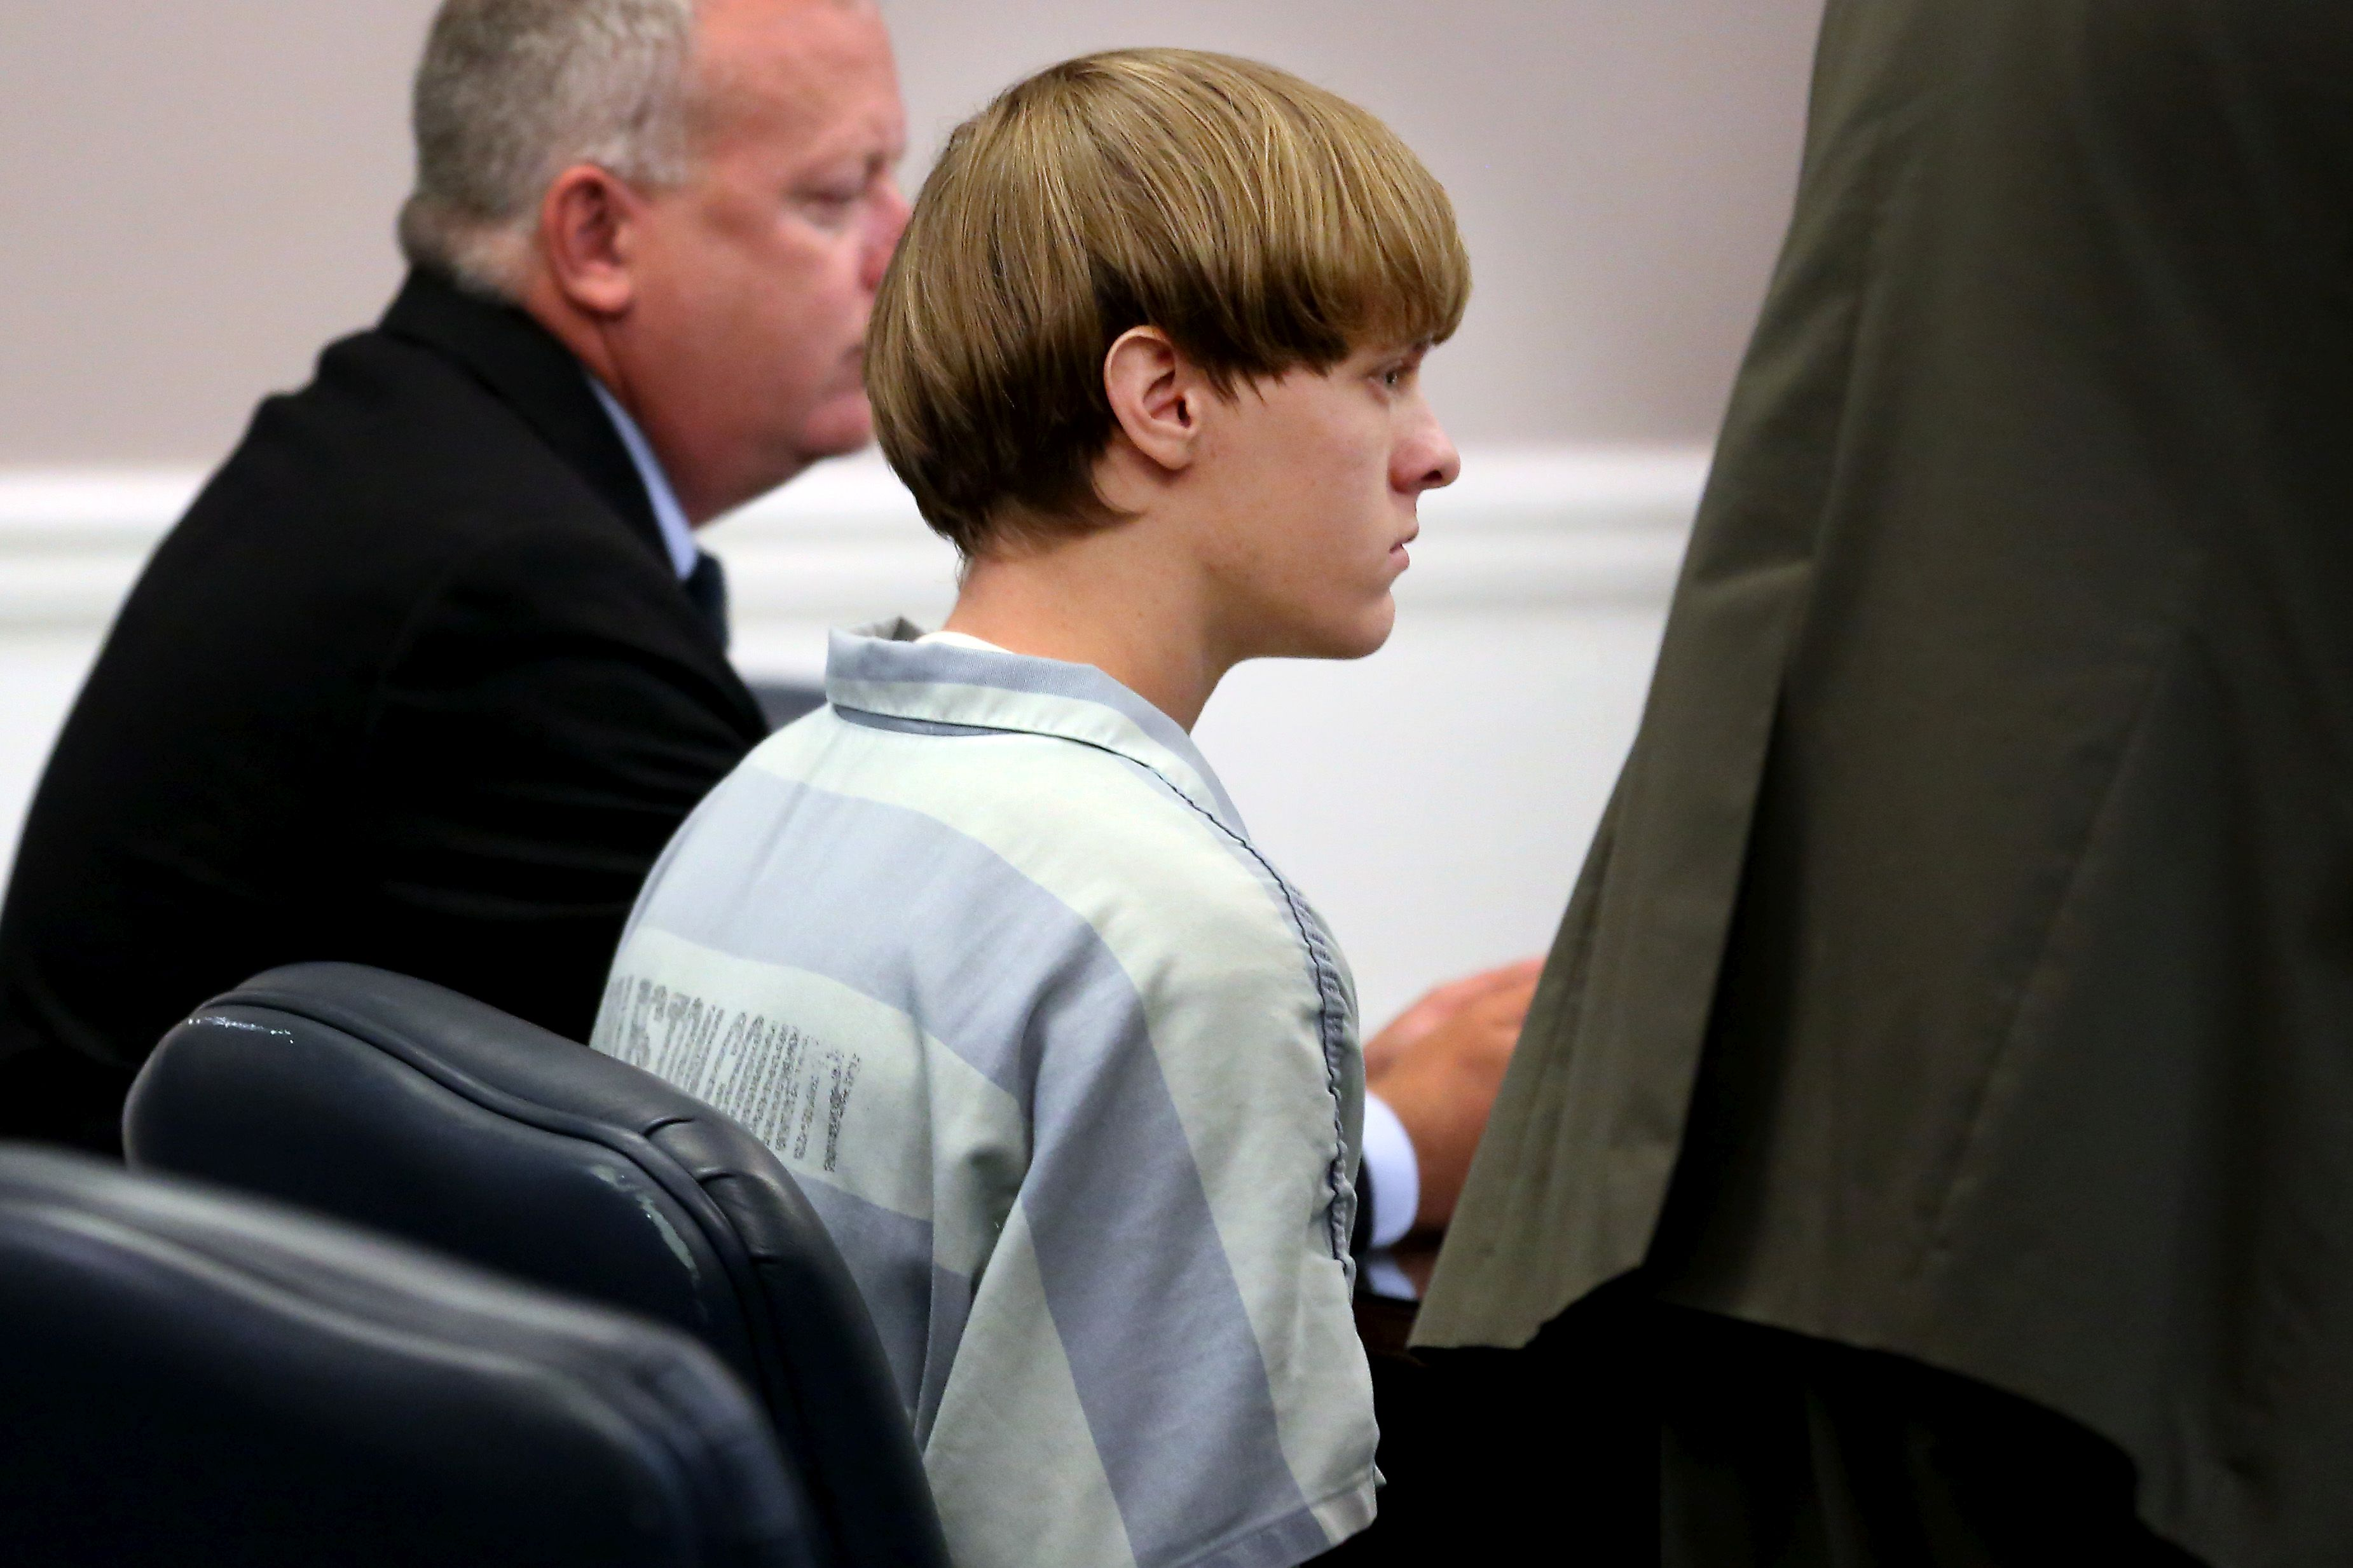 Dylan Roof (C), the suspect in the mass shooting that left nine dead in a Charleston church appears in court in Charleston, S.C., on July 18, 2015.